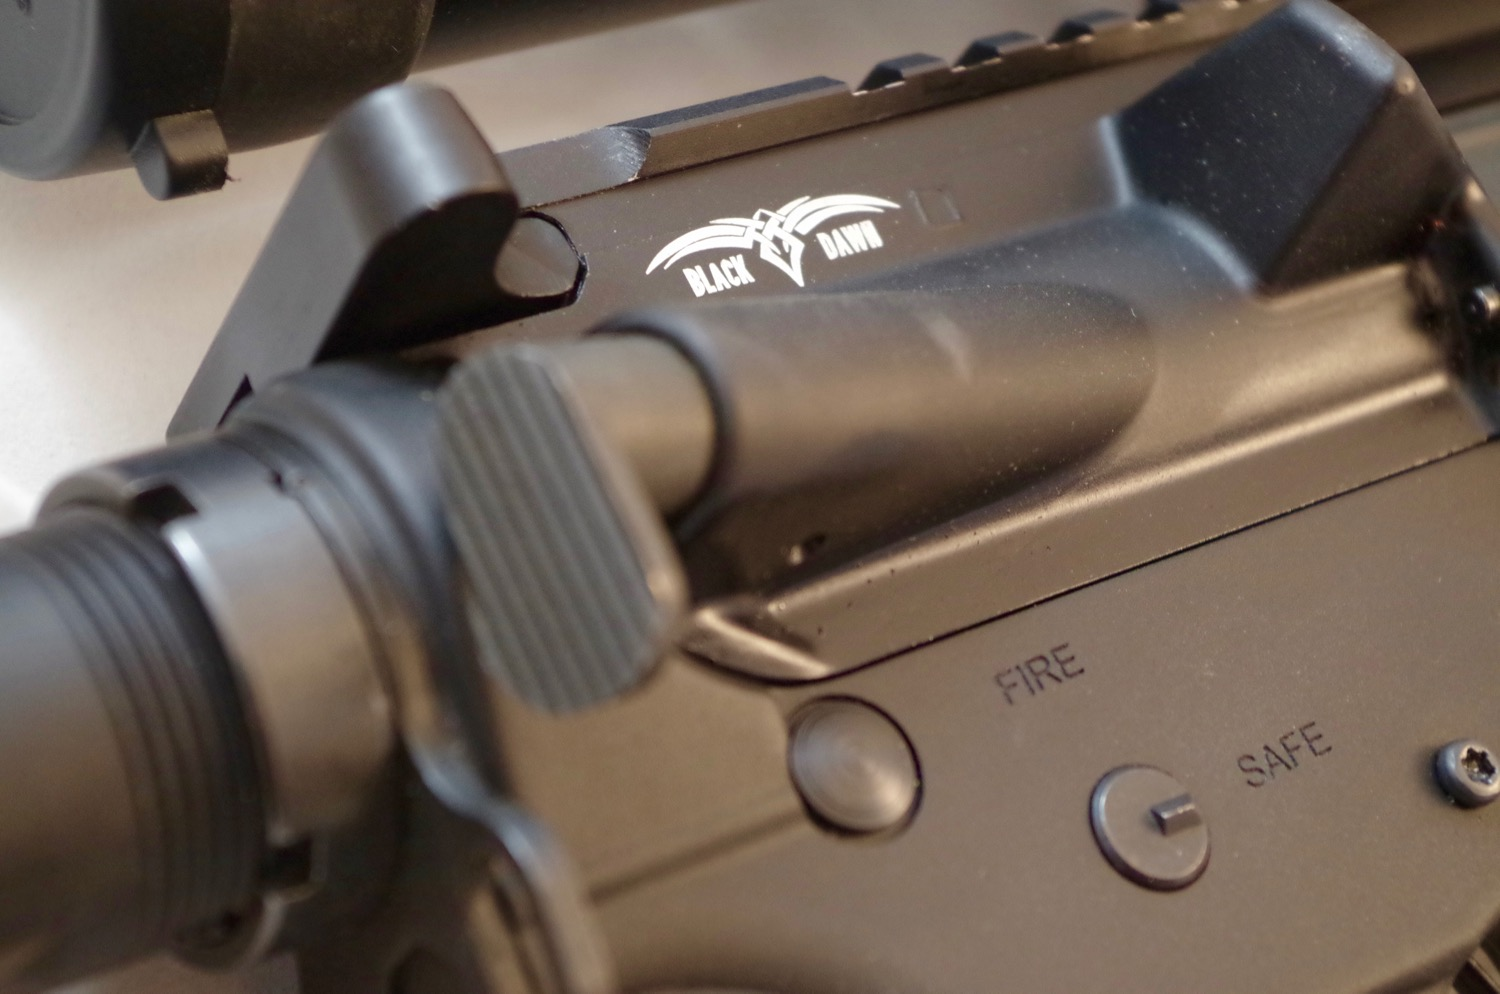 Not that the forward assist is all that useful these days; this rifle had a nice large button if you do use it.